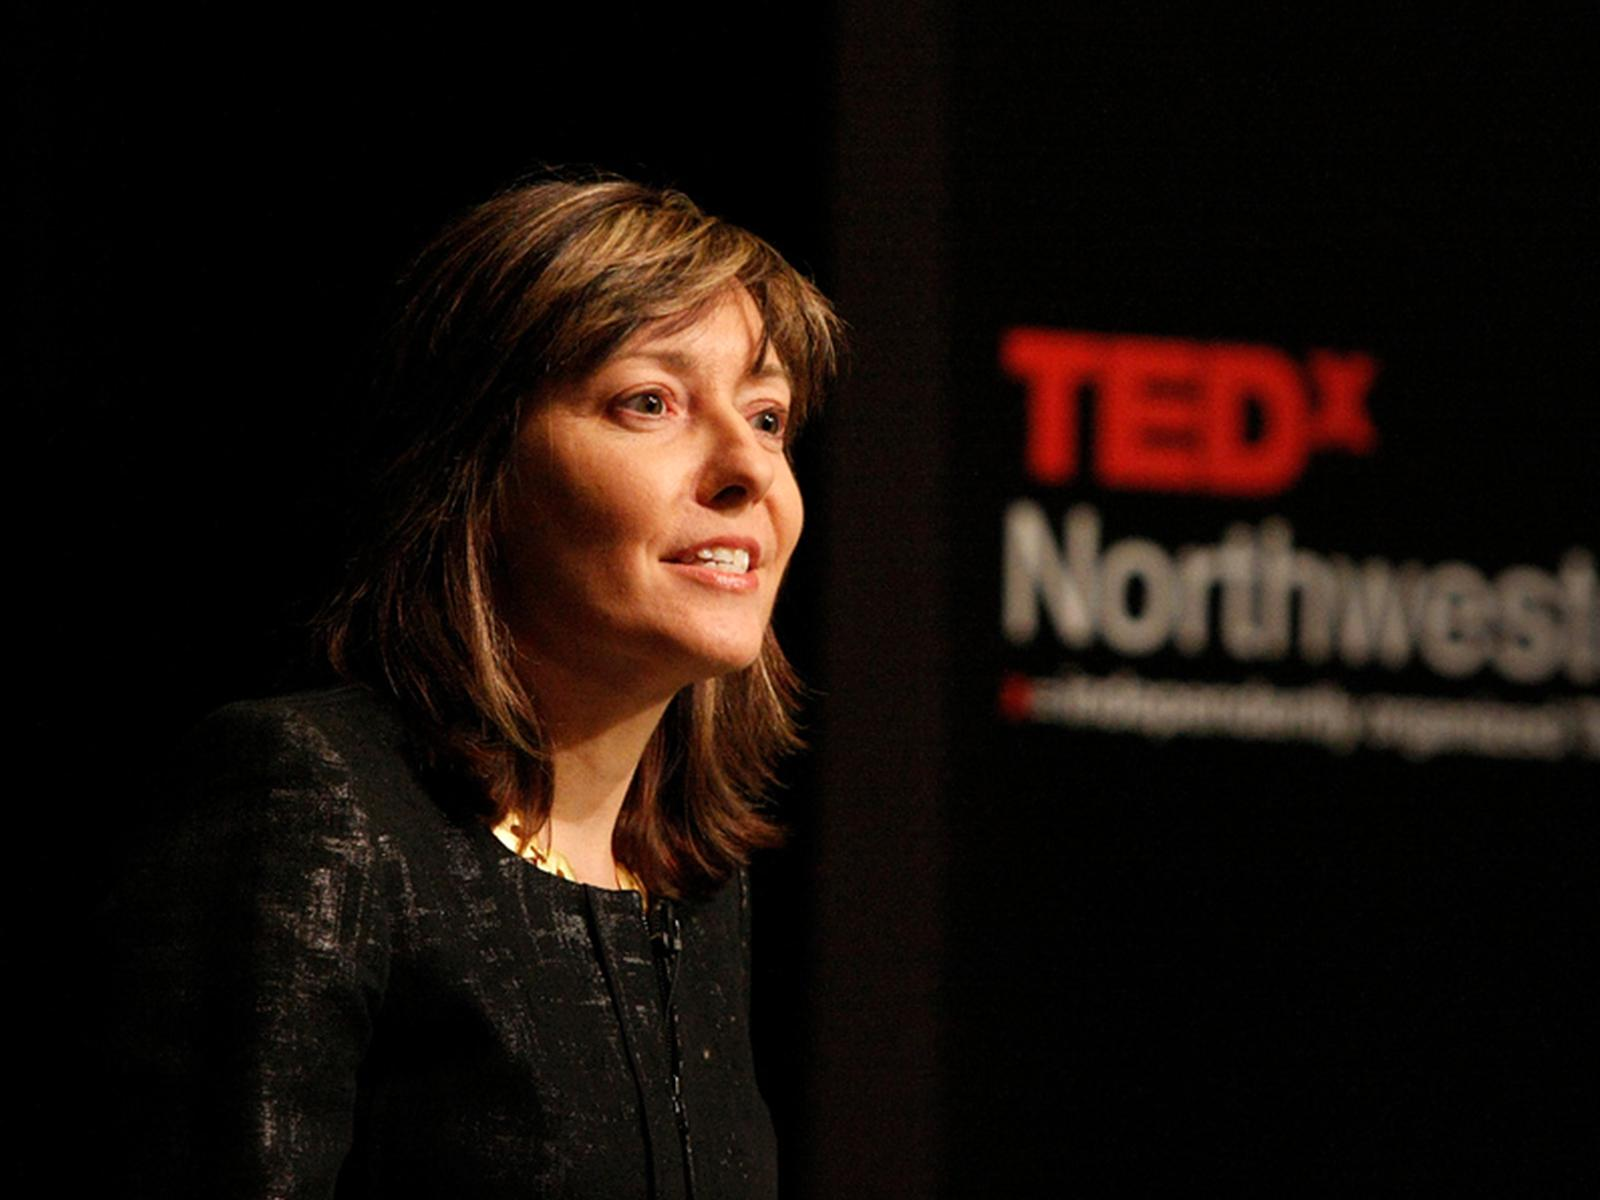 intersex | Search Results | TED